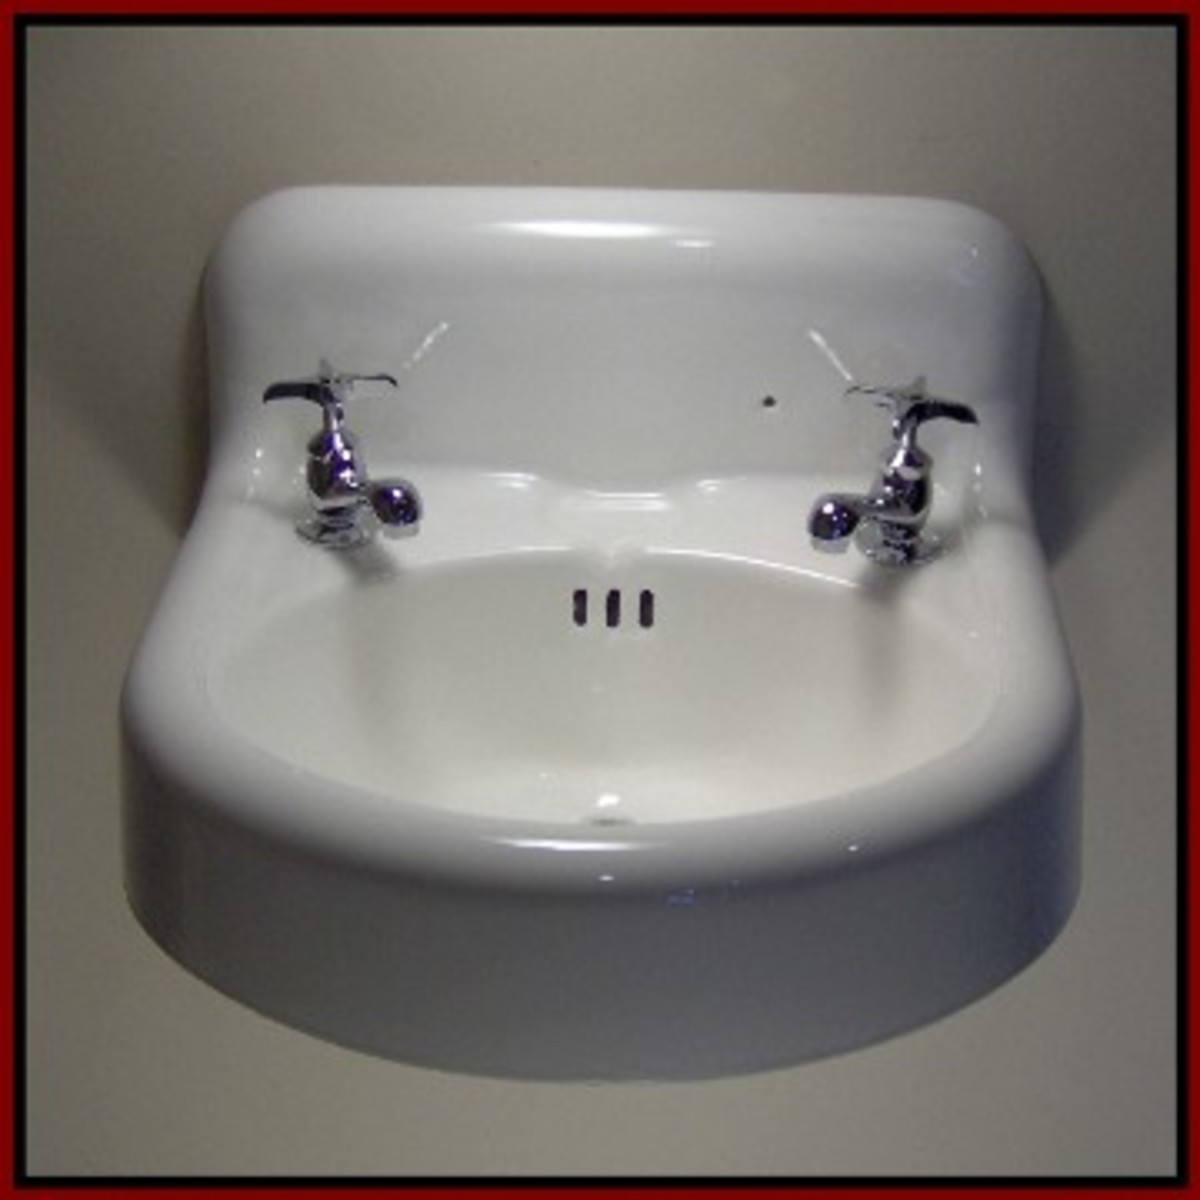 Vintage tubs and bath fixtures dengarden for Bathroom sink backing up into tub